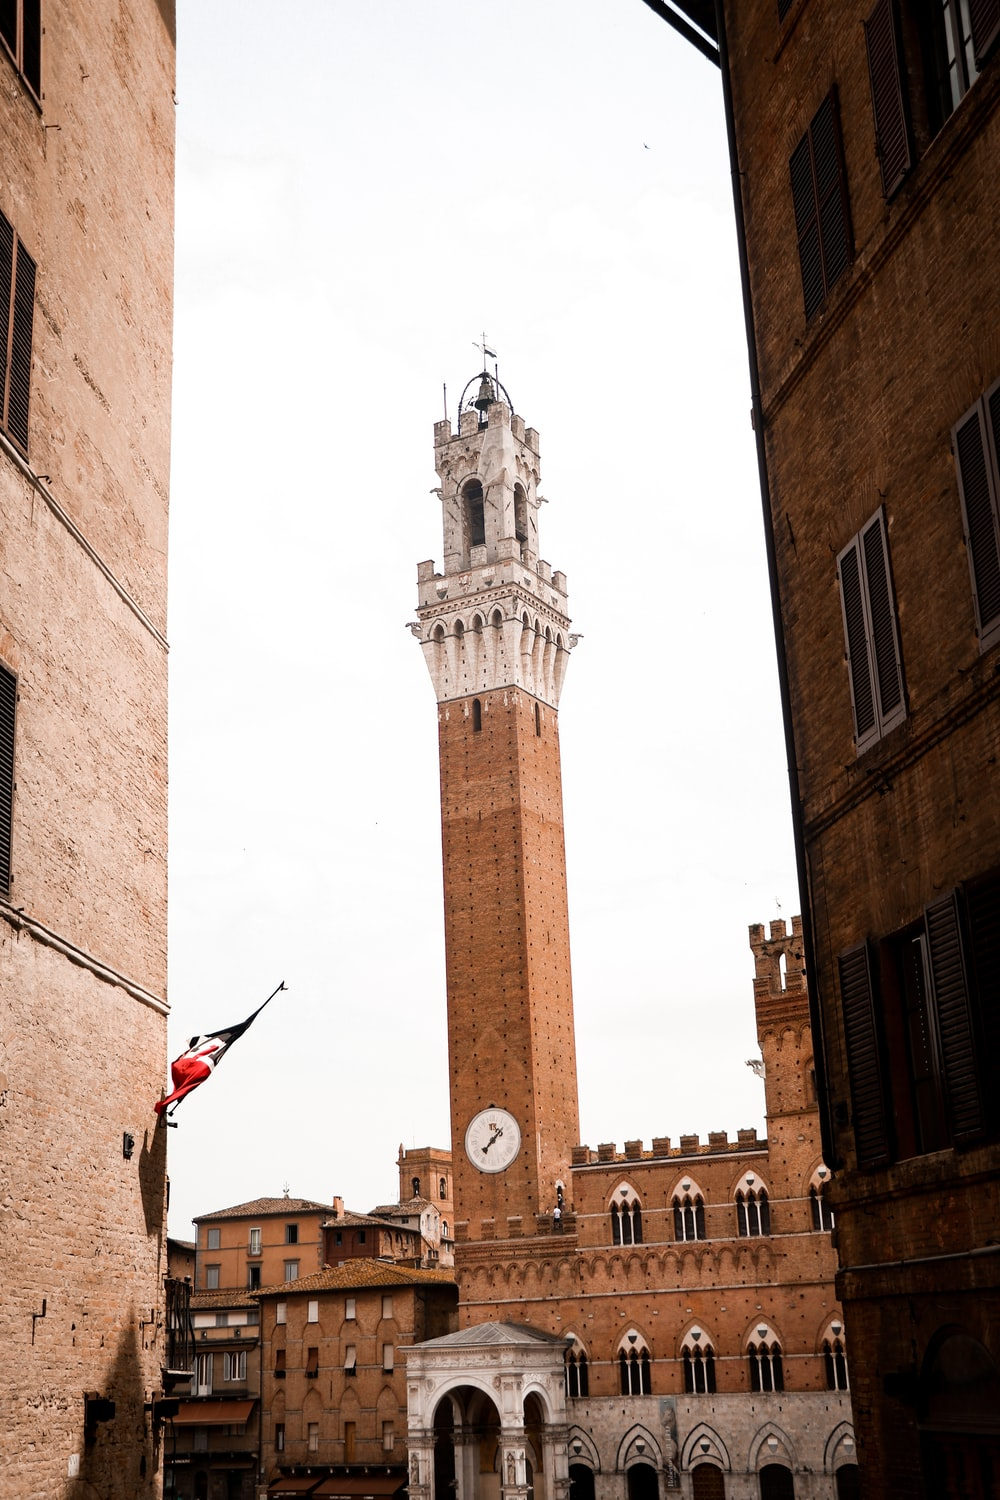 brown concrete tower with red flag on top